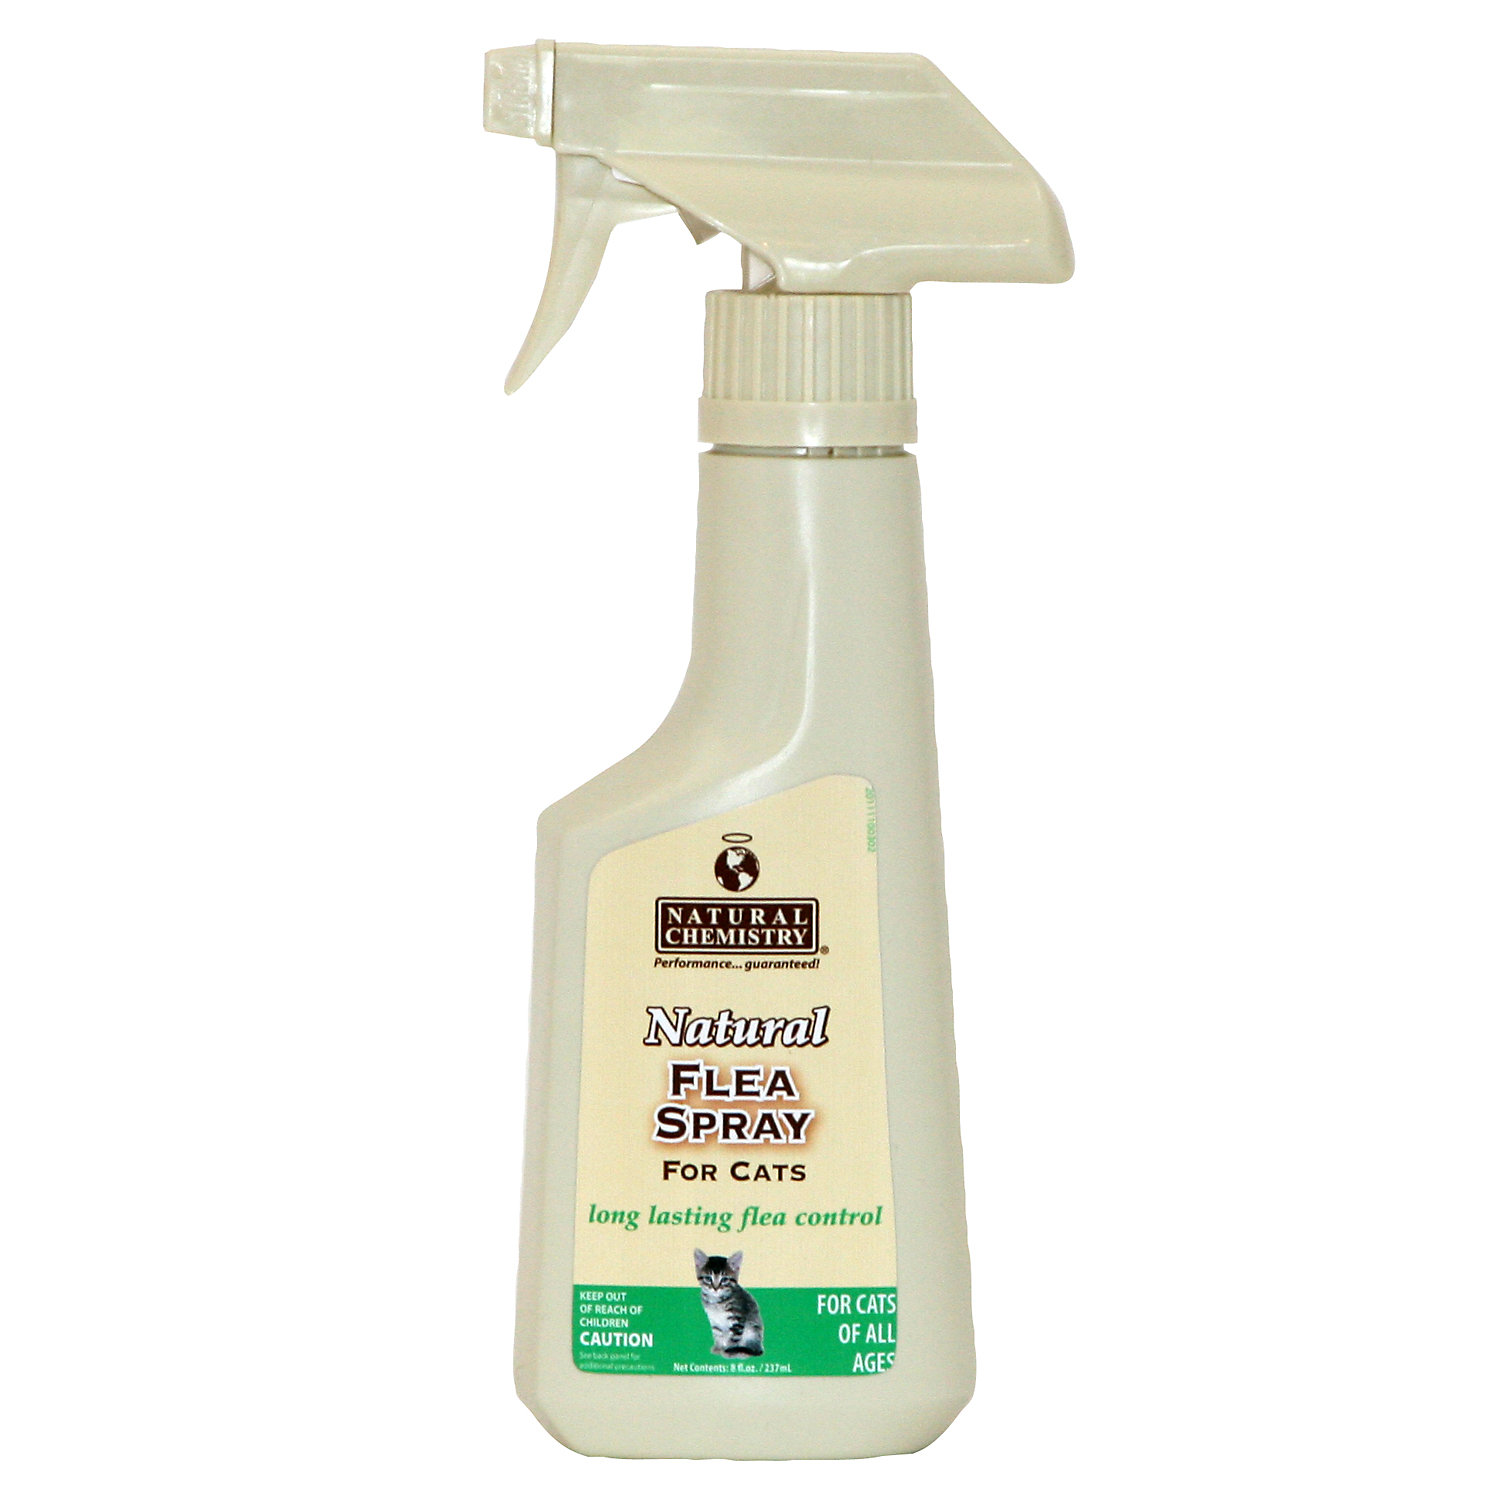 Natural Chemistry Natural Cat Flea Spray